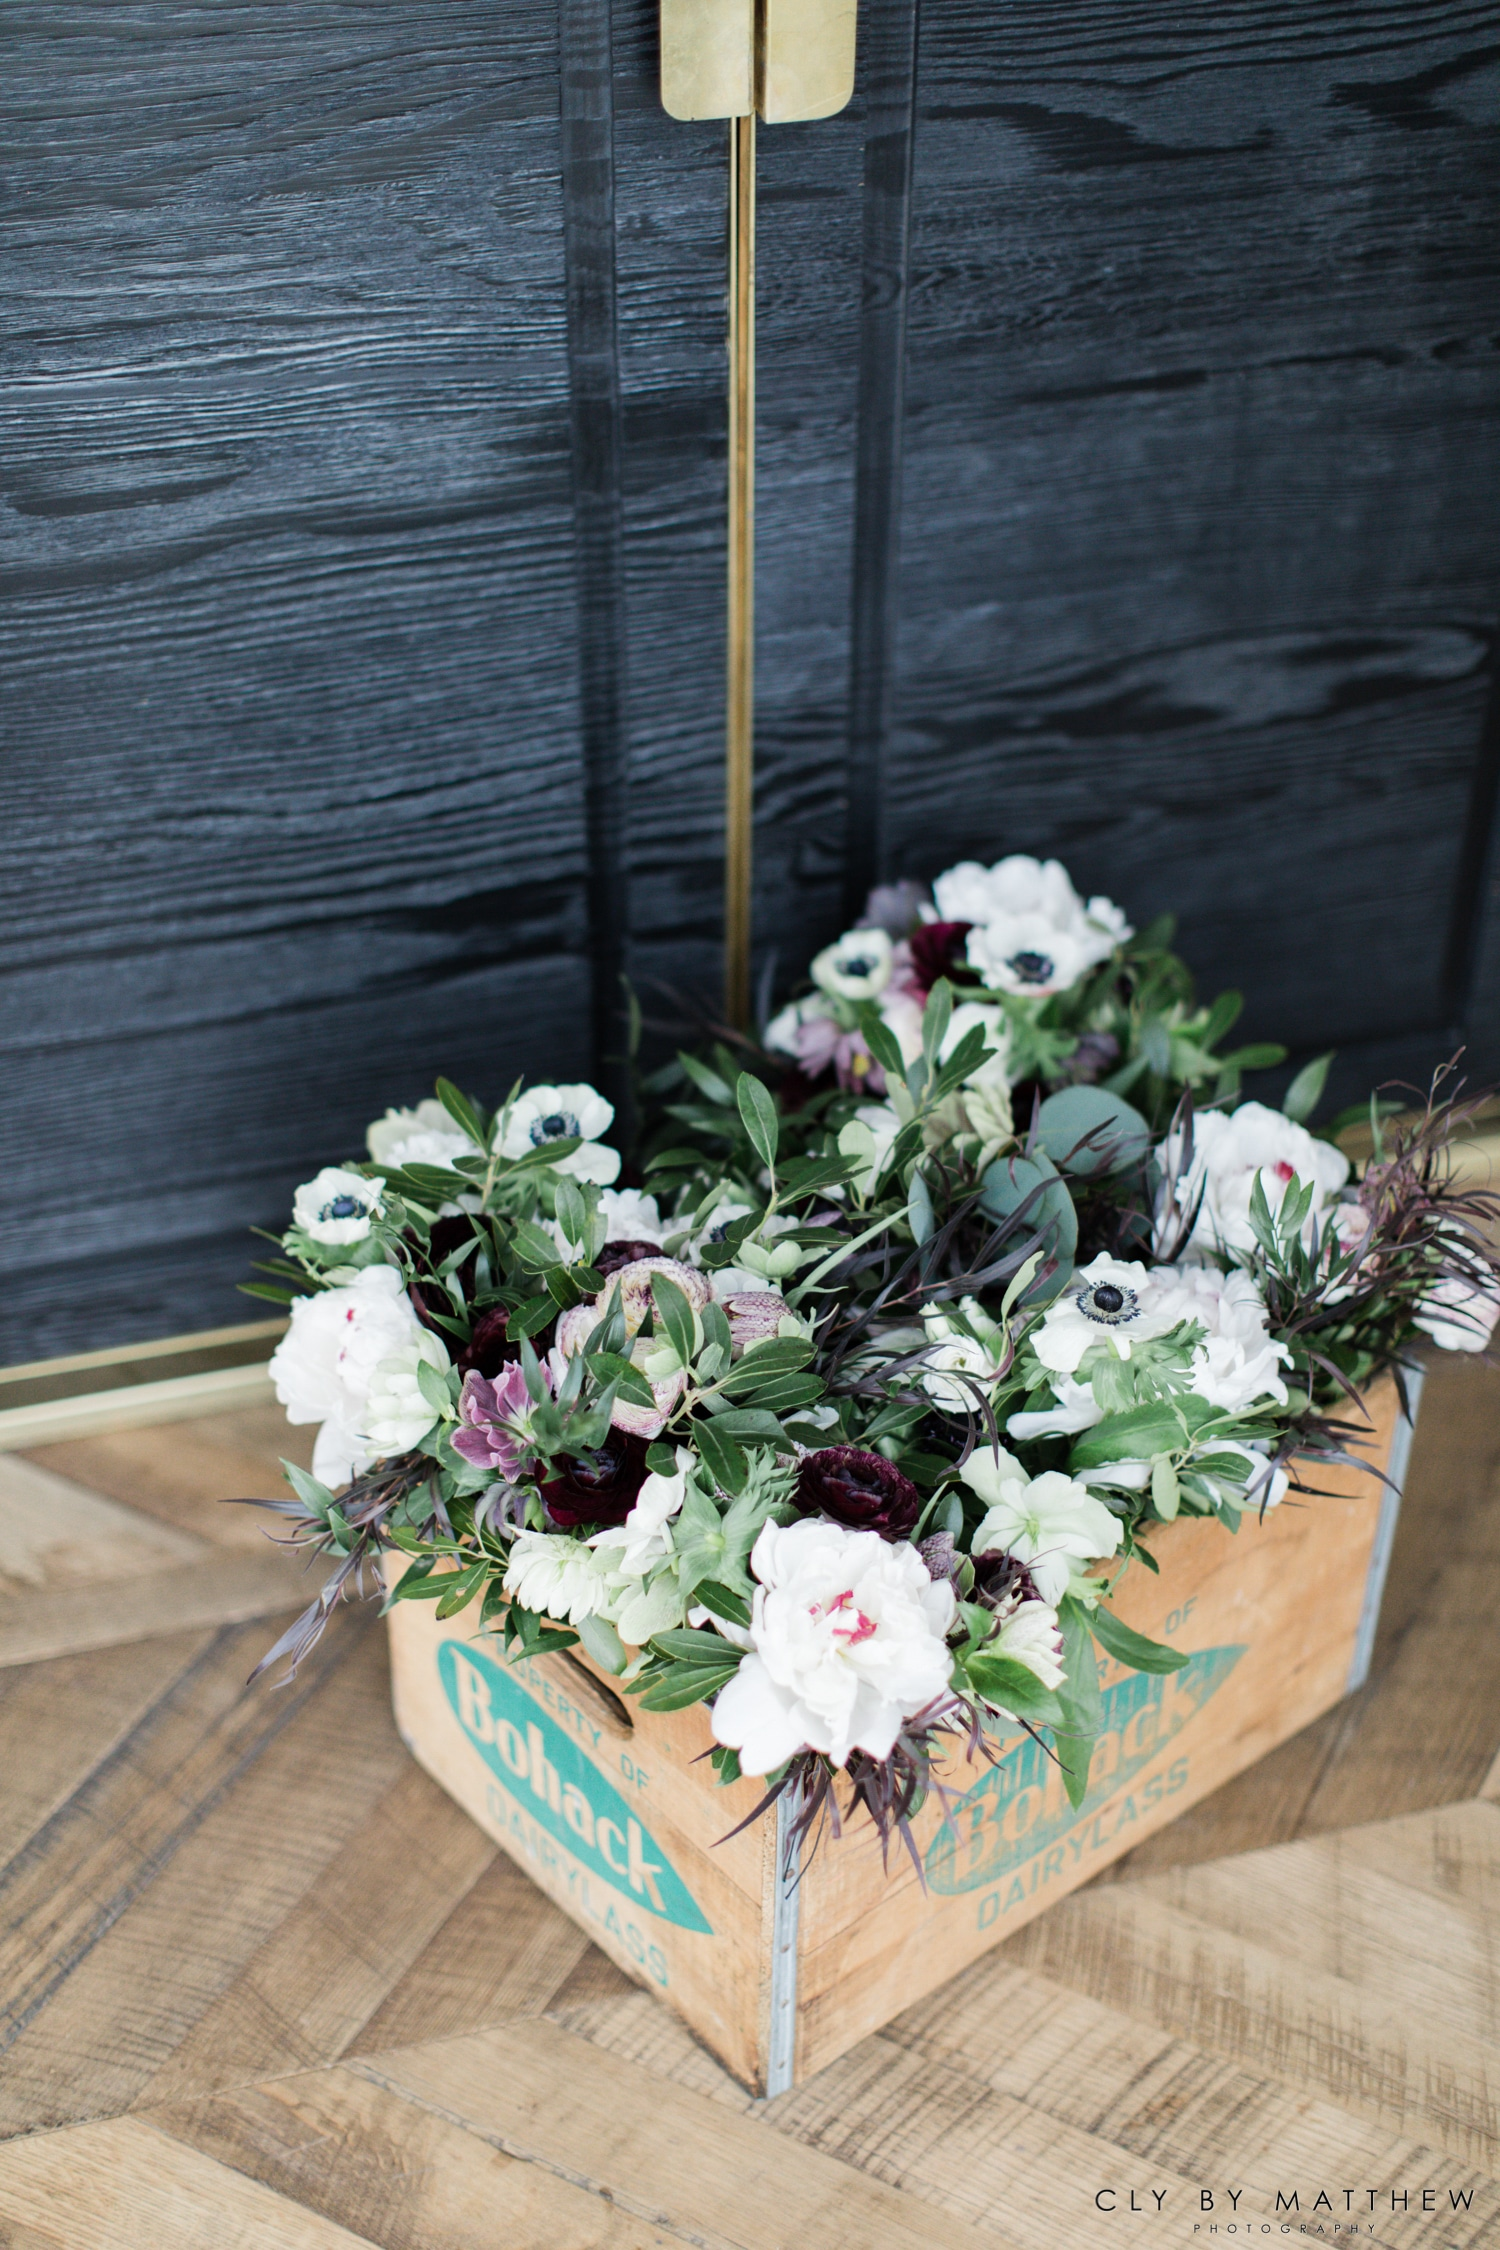 The Best Sustainable Wedding Florists for Eco Friendly Organic Flowers in Ne